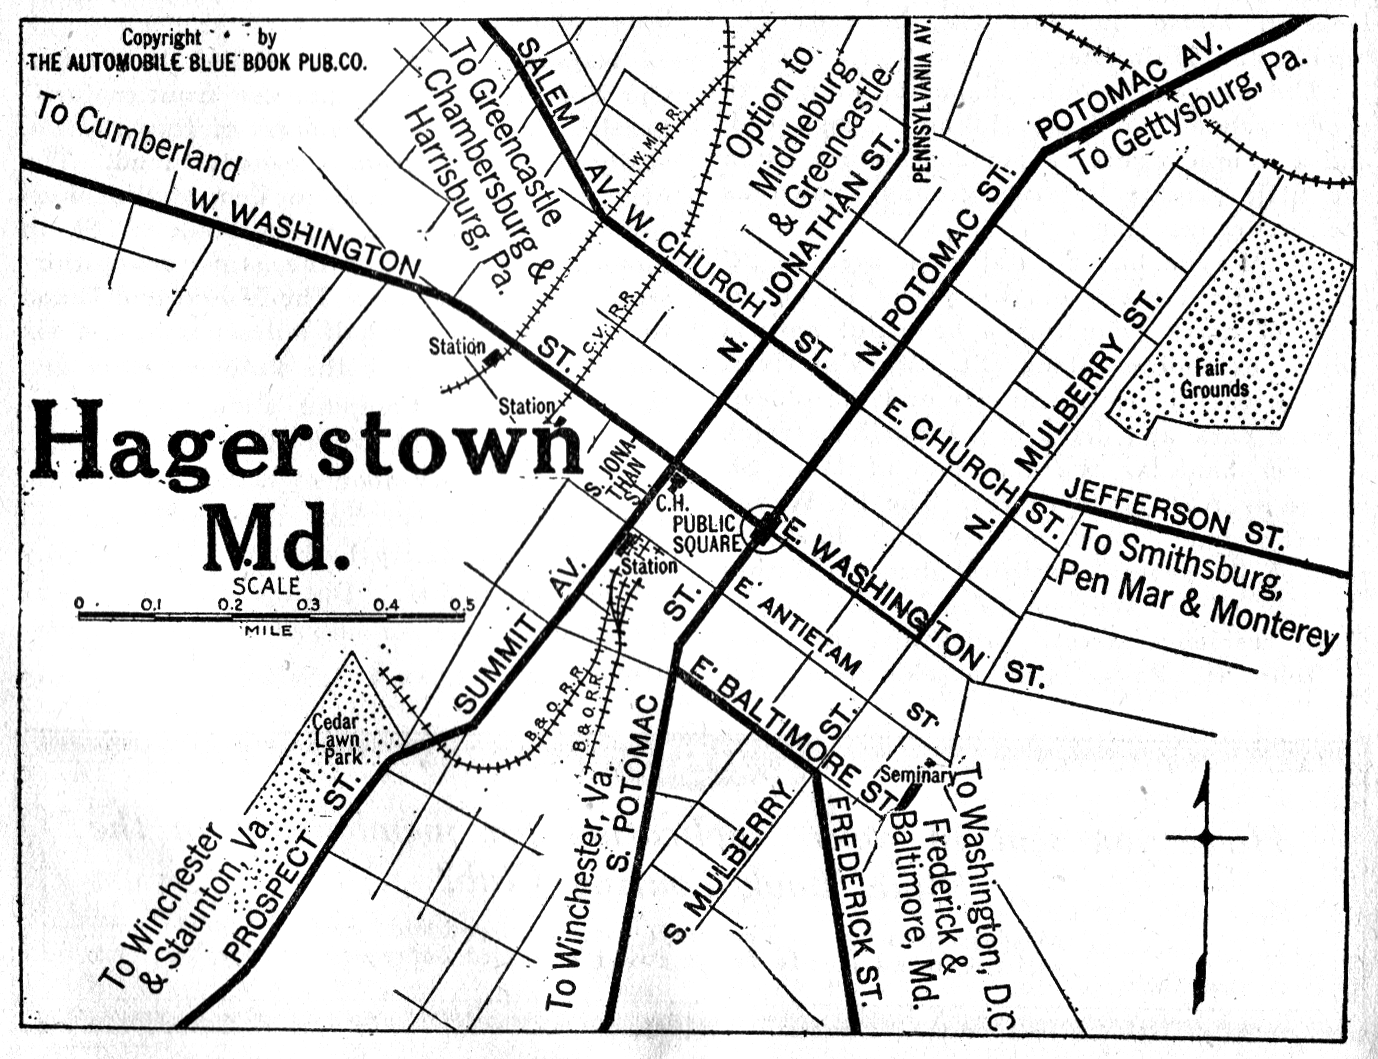 HagerstownMD1923ABB Map Of Hagerstown Roads on map of south mountain state park, map of barnesville, map of marydel, map of oldtown, map of district heights, map of hyattsville, map of eldersburg, map of lawrenceburg, map of cobb island, map of st. cloud, map of glen echo, map of greenbrier state park, map of wilkes-barre, map of north bethesda, map of port deposit, map of canal fulton, map of lanham, map of riva, map of fishers, map of rock hall,